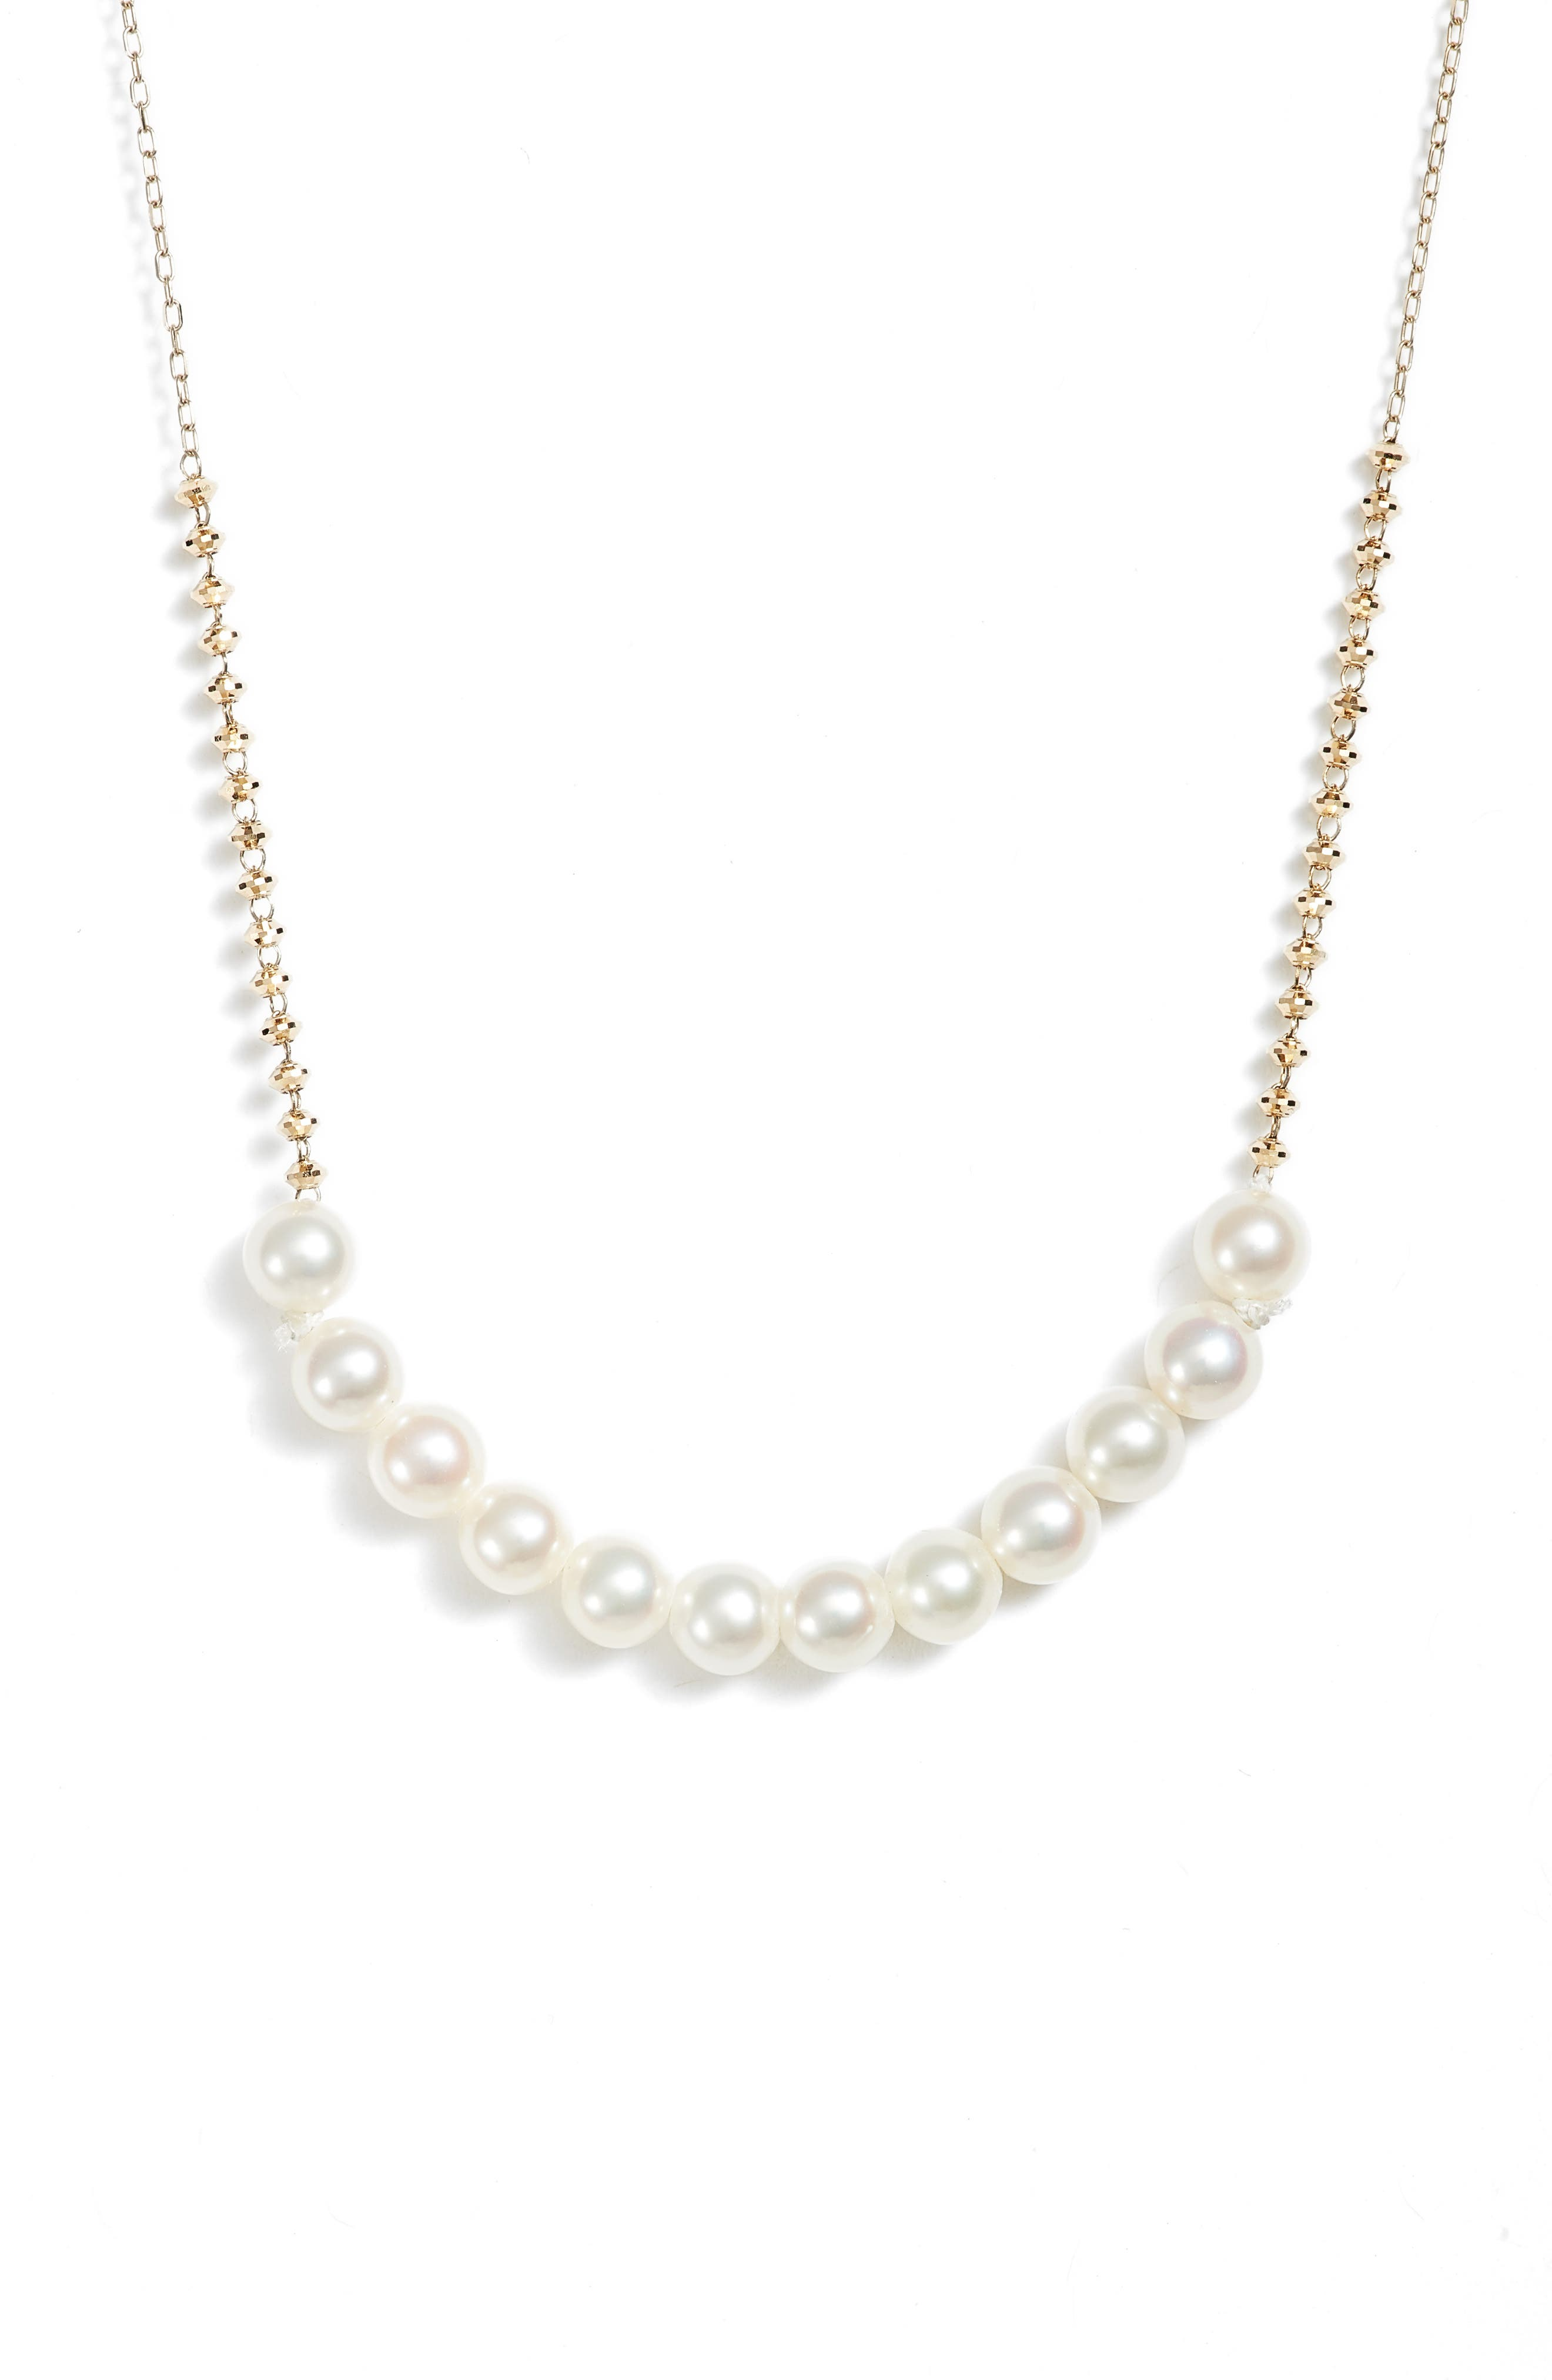 Beaded Pearl Necklace,                             Main thumbnail 1, color,                             YELLOW GOLD/ WHITE PEARL